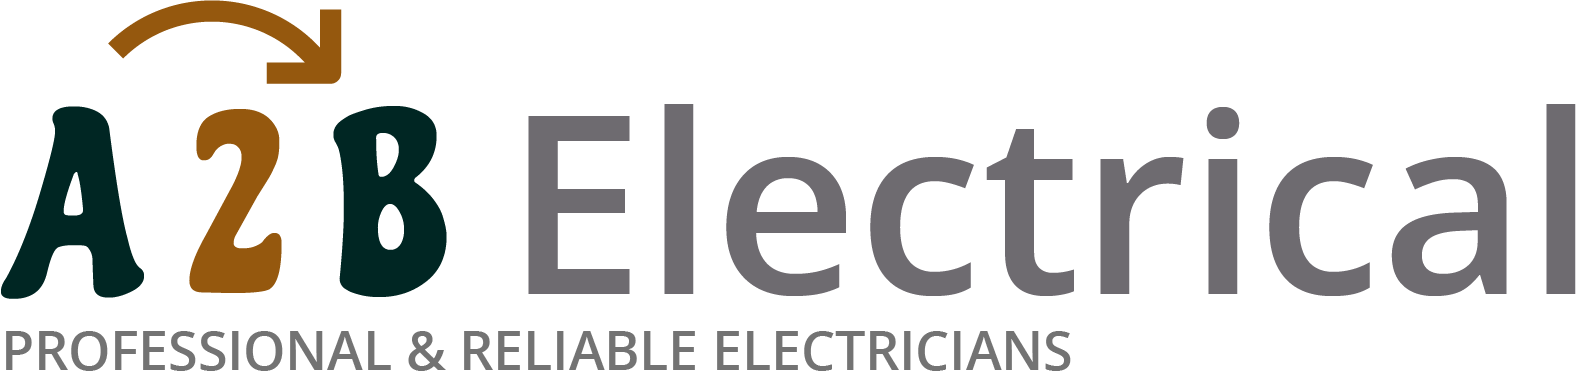 If you have electrical wiring problems in Lewisham, we can provide an electrician to have a look for you.